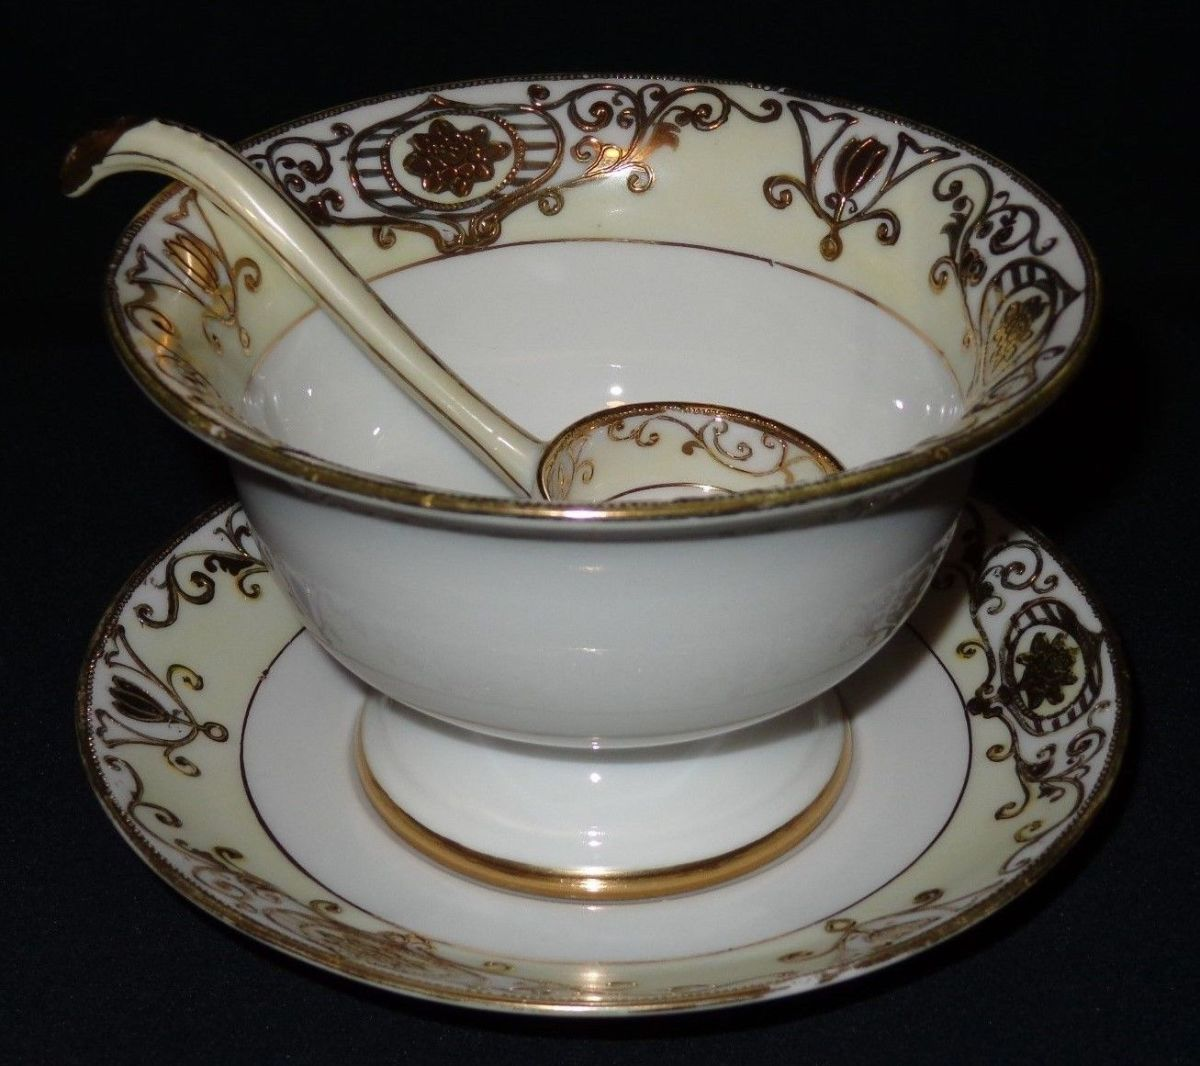 This is a three-piece set of a mayonnaise server with an under-plate and a ladle.